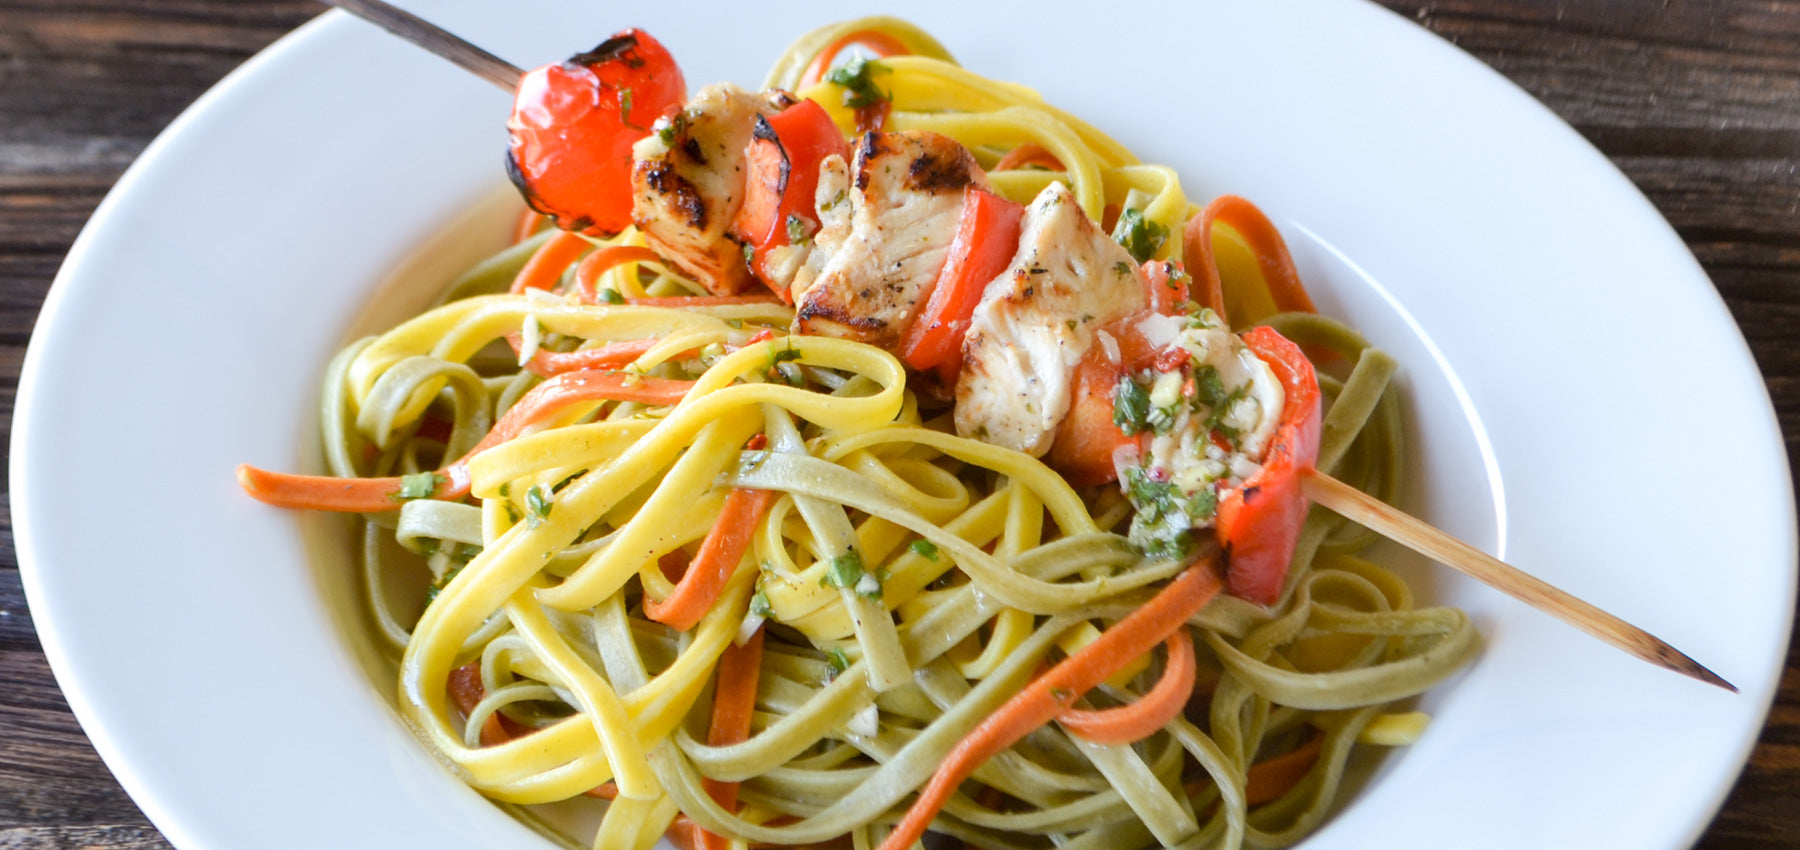 Cilantro Lime Chicken Skewers over Bell Pepper Trio Linguine